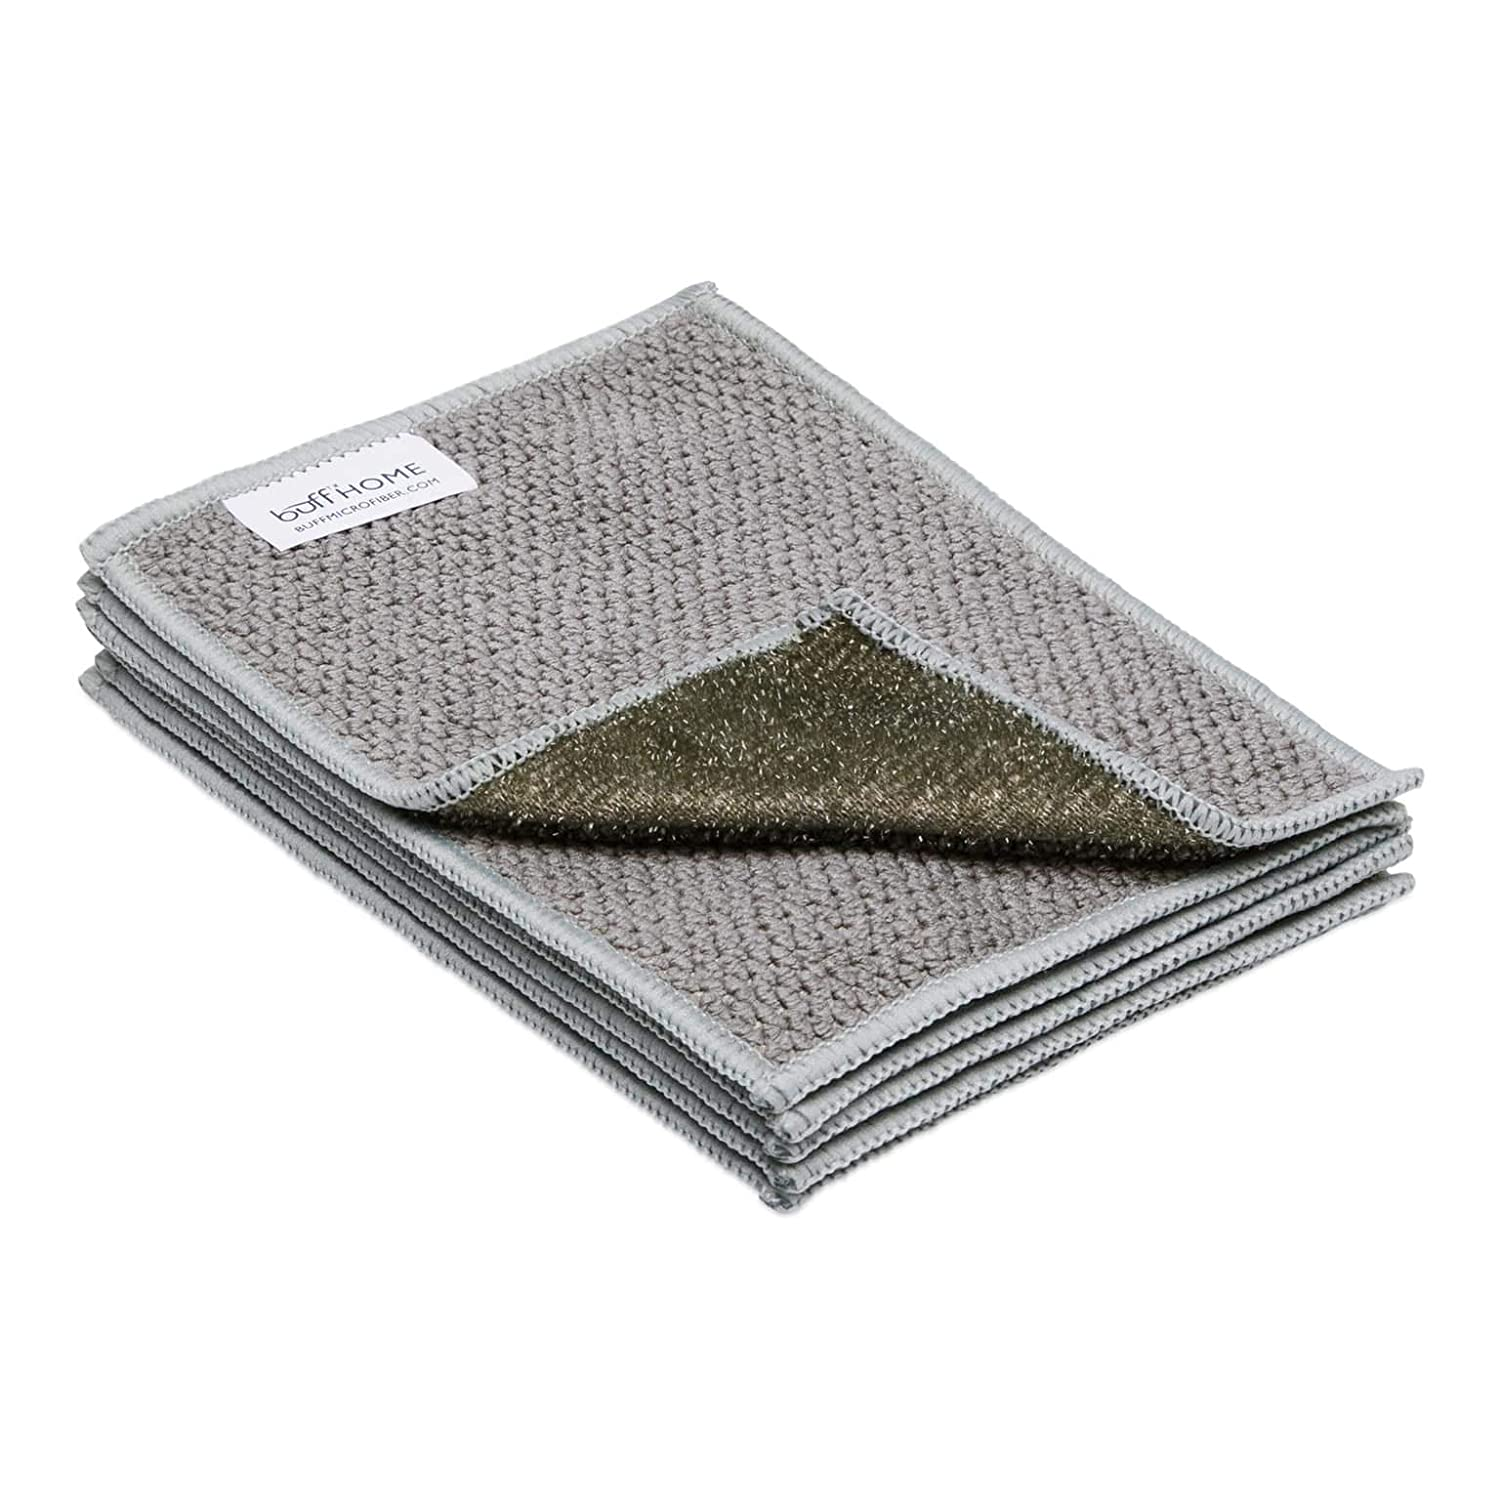 Microfiber Dish Cloths | Scrubs & Cleans: Dishes, Sinks, Counters, Stove Tops | Easy Rinsing | Machine Washable | 6 Pack (size 4 x 6 inches)